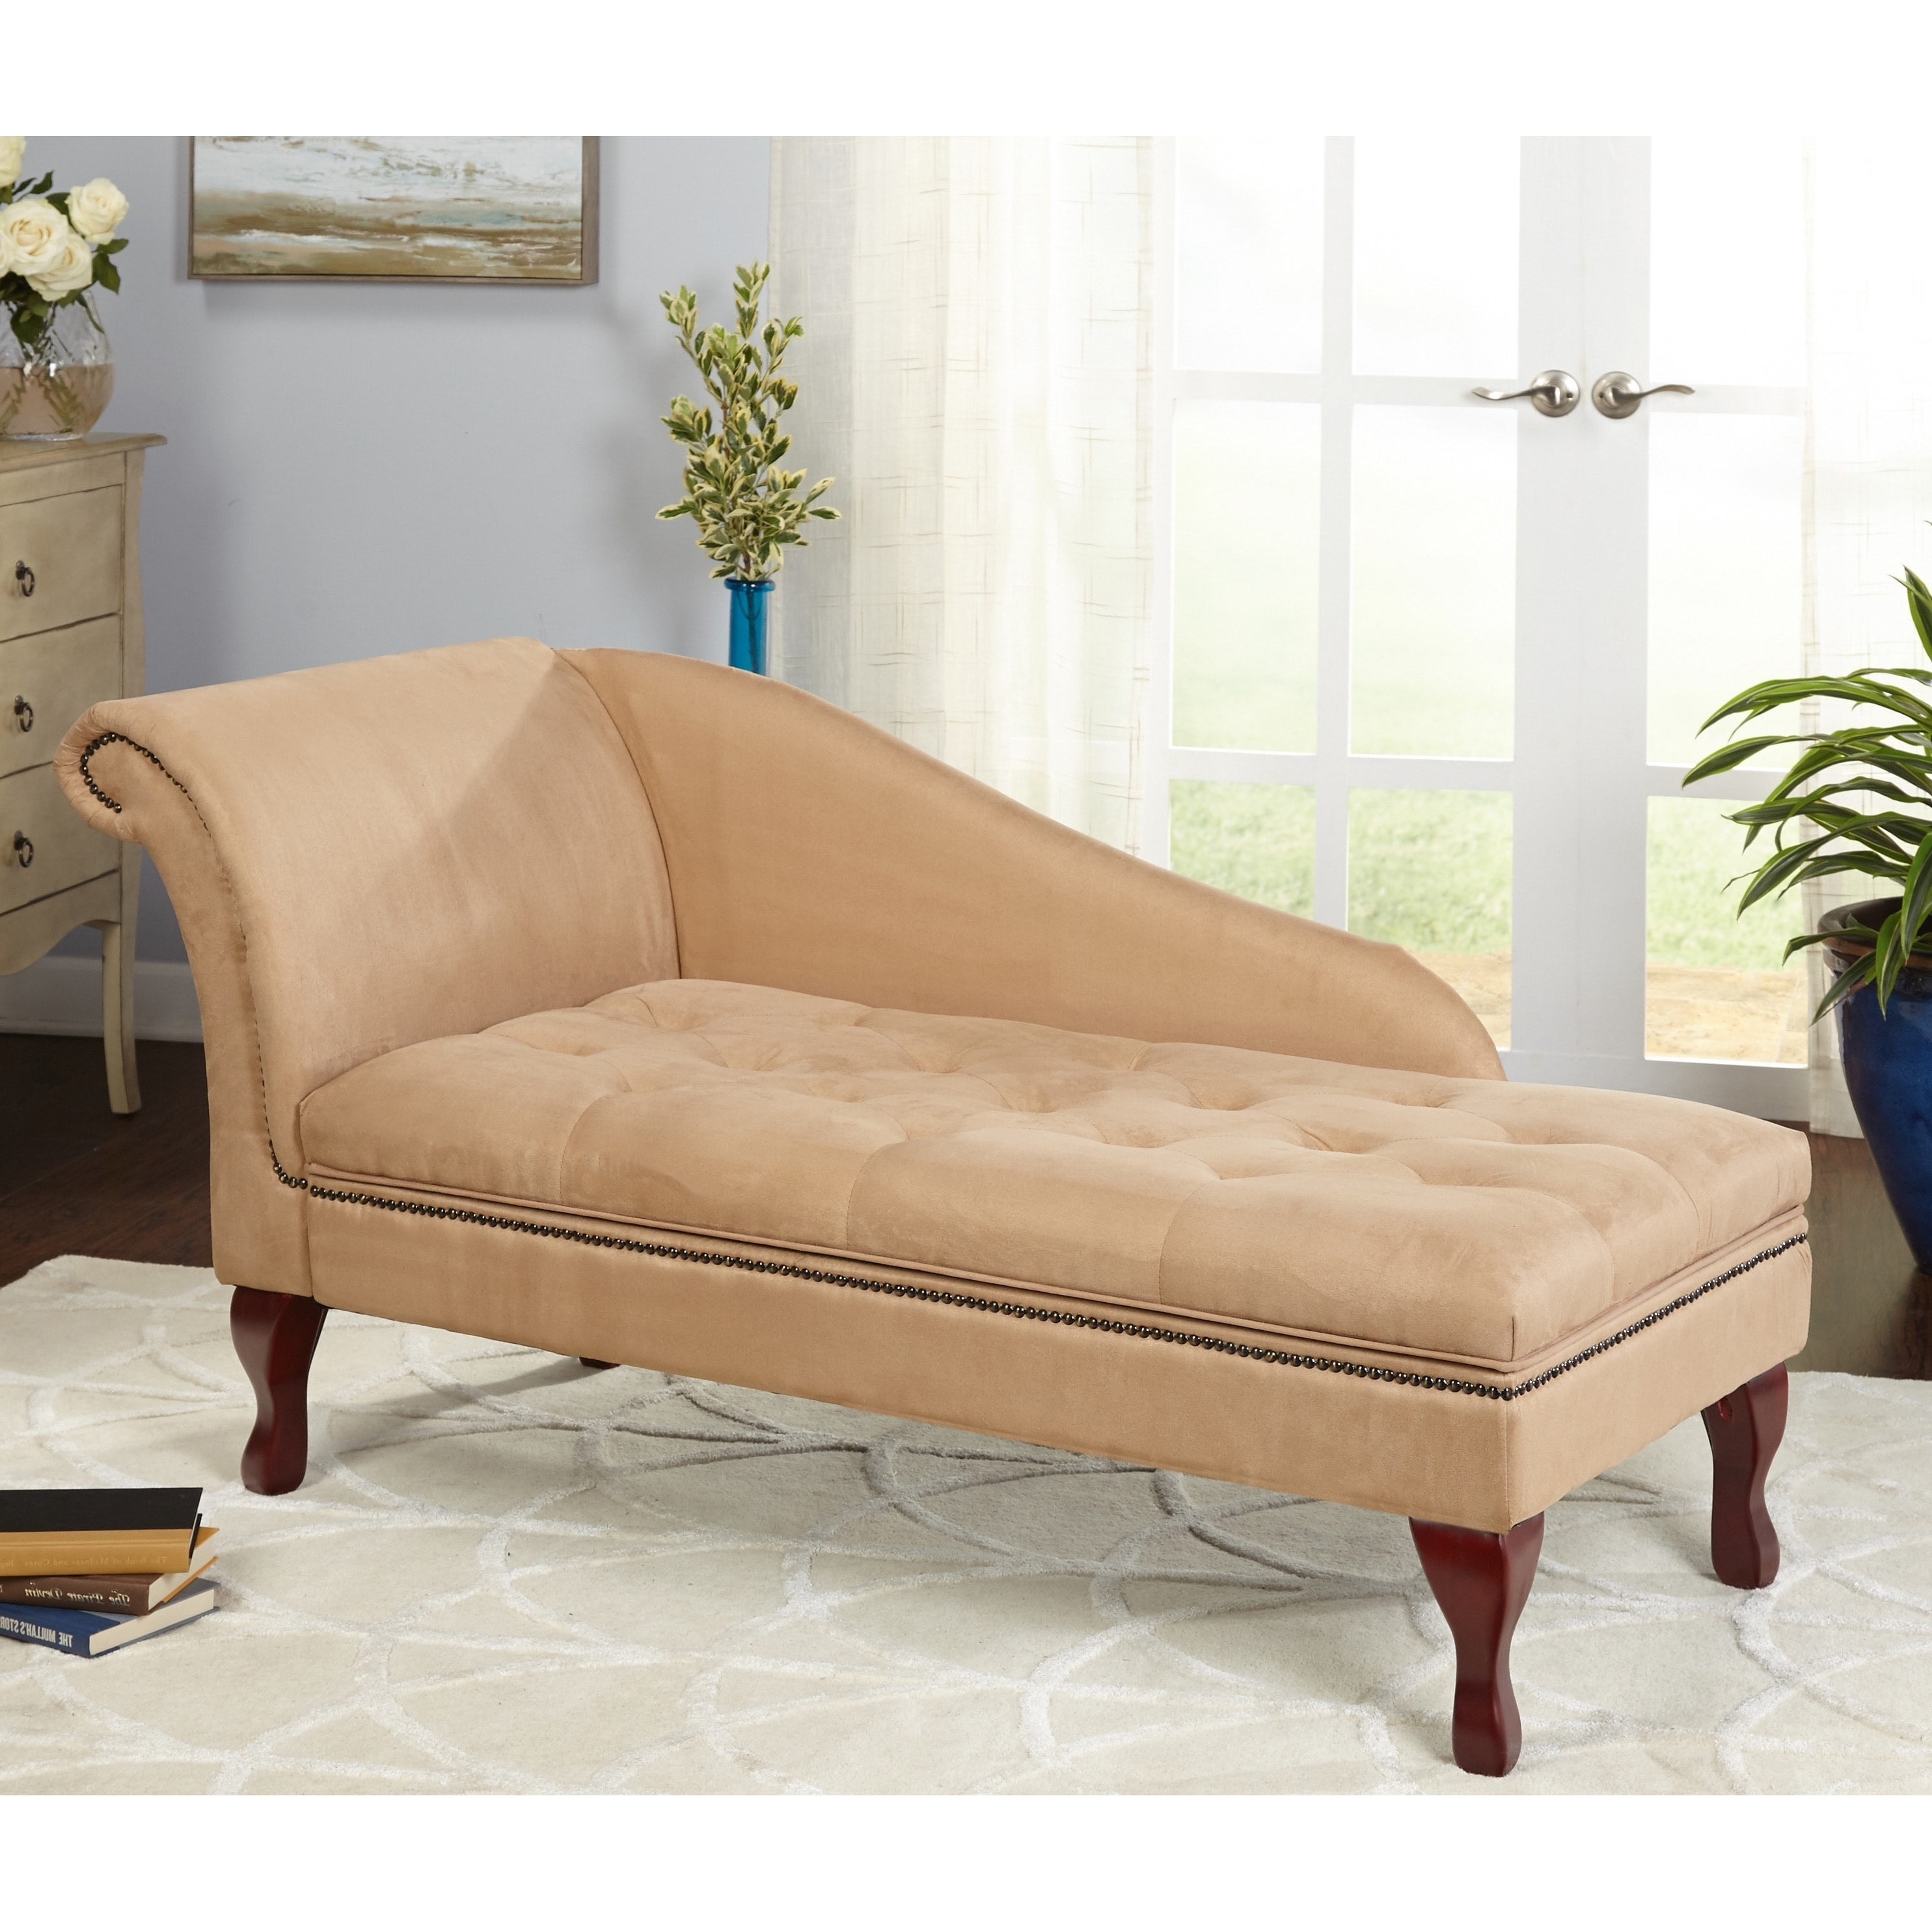 Preferred Simple Living Tan Chaise Lounge With Storage – N/a – Free Shipping Throughout Chaise Lounges With Storage (View 2 of 15)